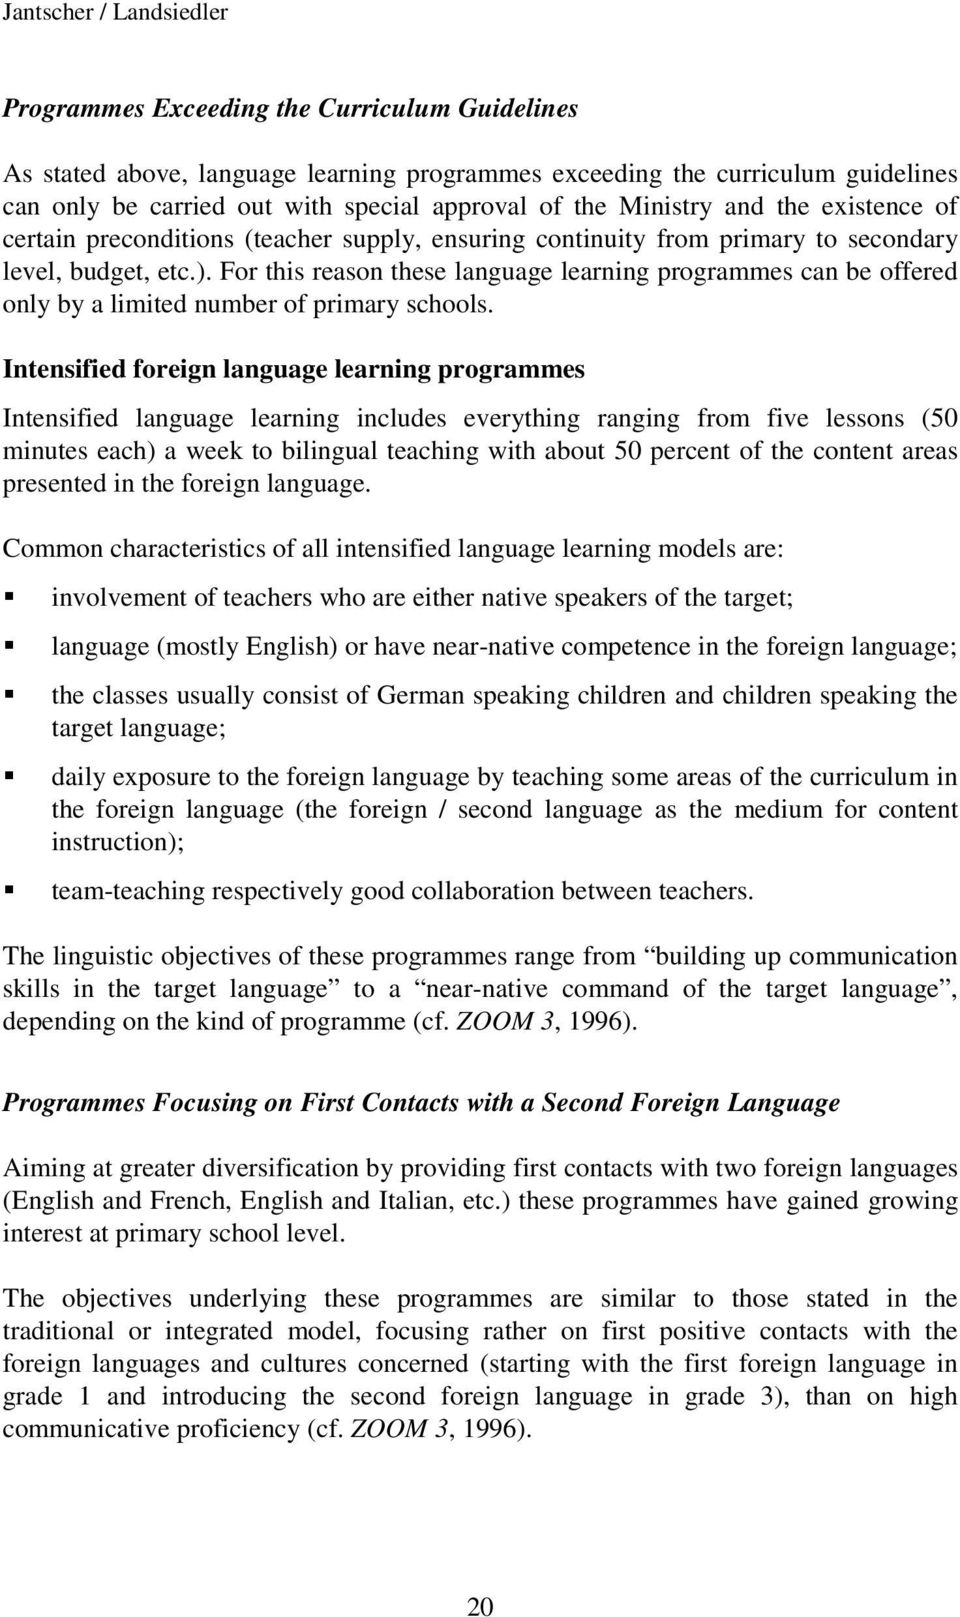 For this reason these language learning programmes can be offered only by a limited number of primary schools.